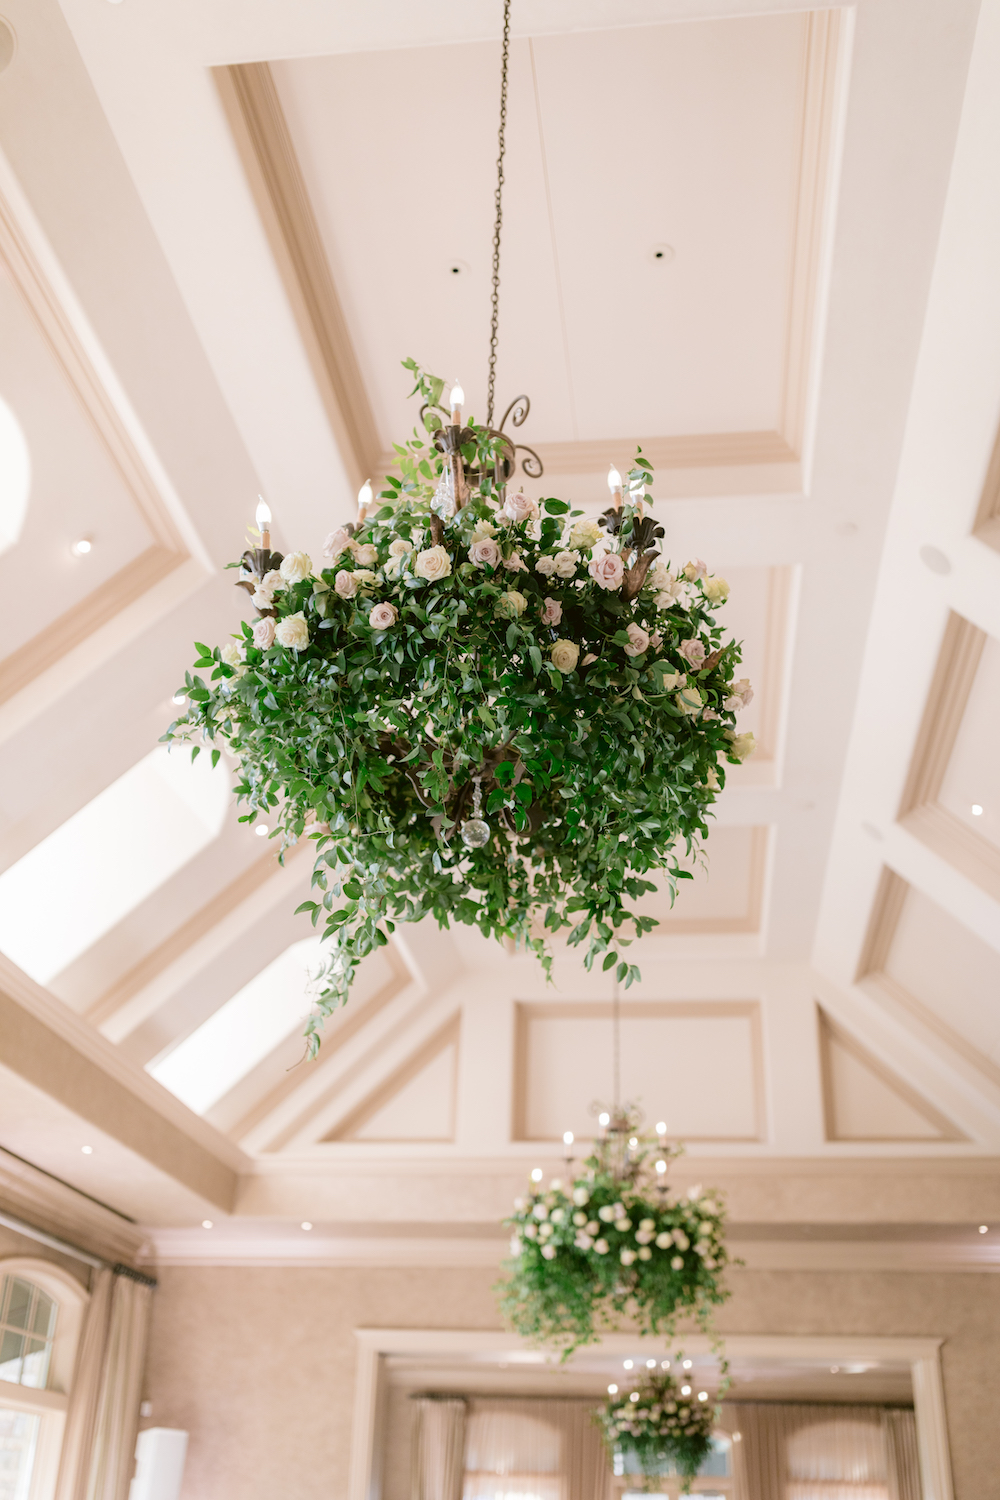 Hanging rose bush chandeliers with vines for an ethereal reception decor look.